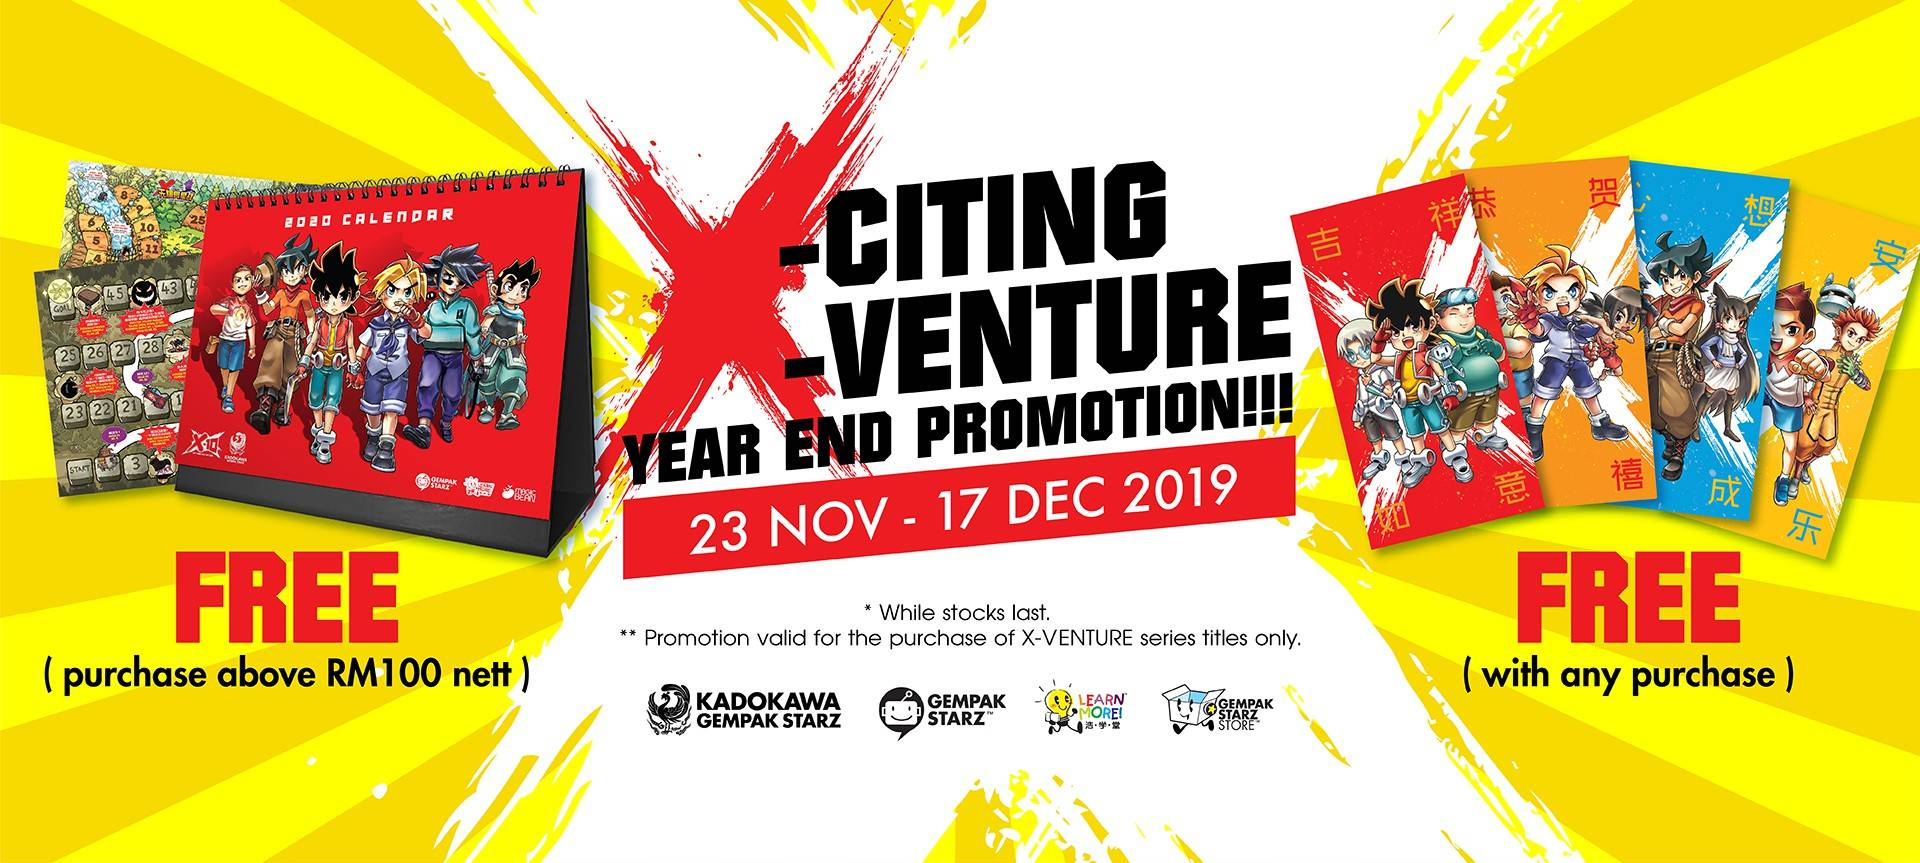 X-Citing X-Venture Year End Promo